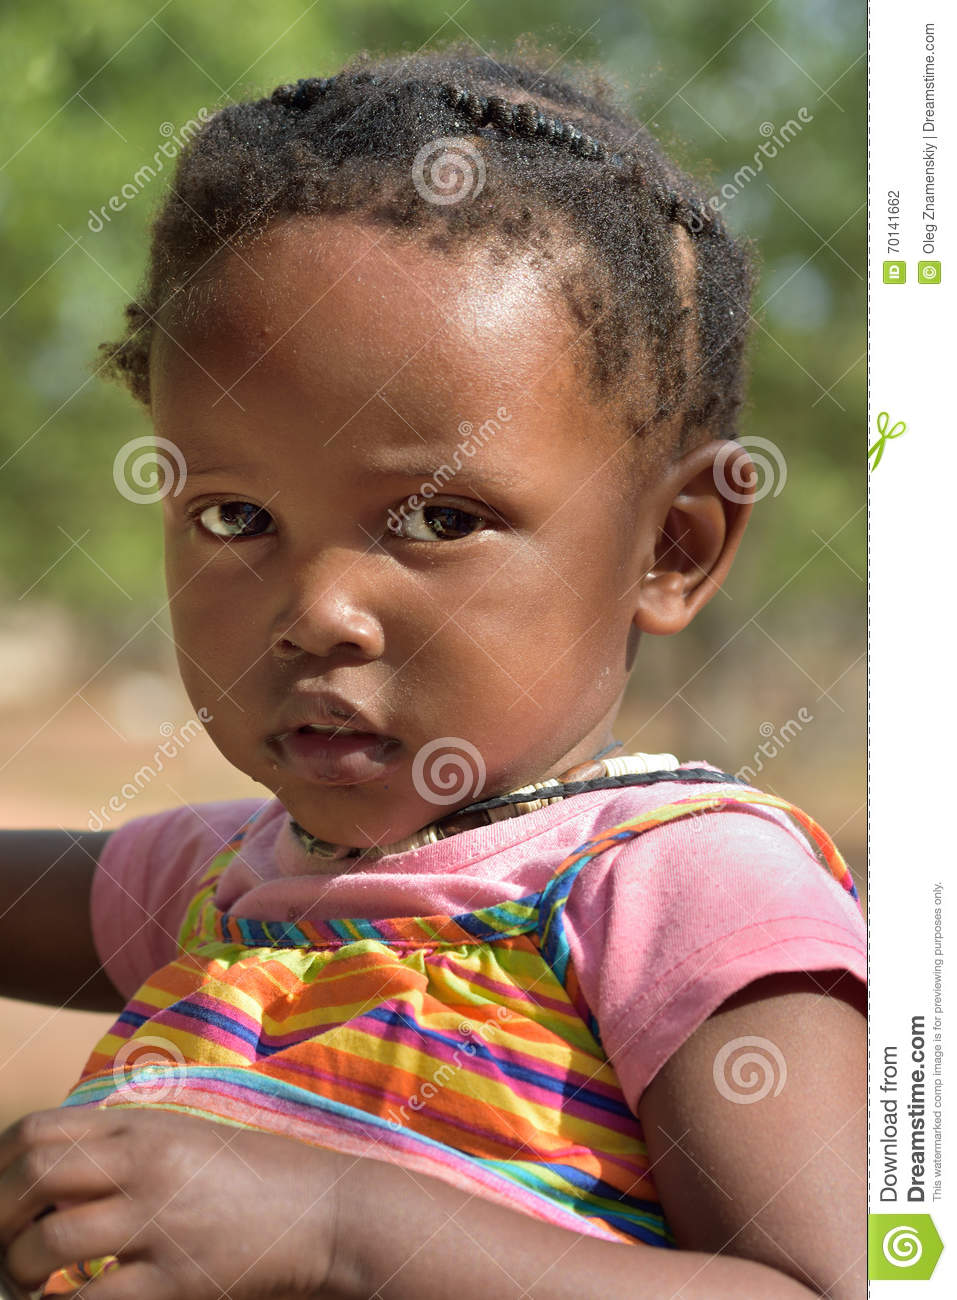 Kamanjab Namibia  city photo : KAMANJAB, NAMIBIA FEB 1, 2016: Little unidentified Himba girl in ...